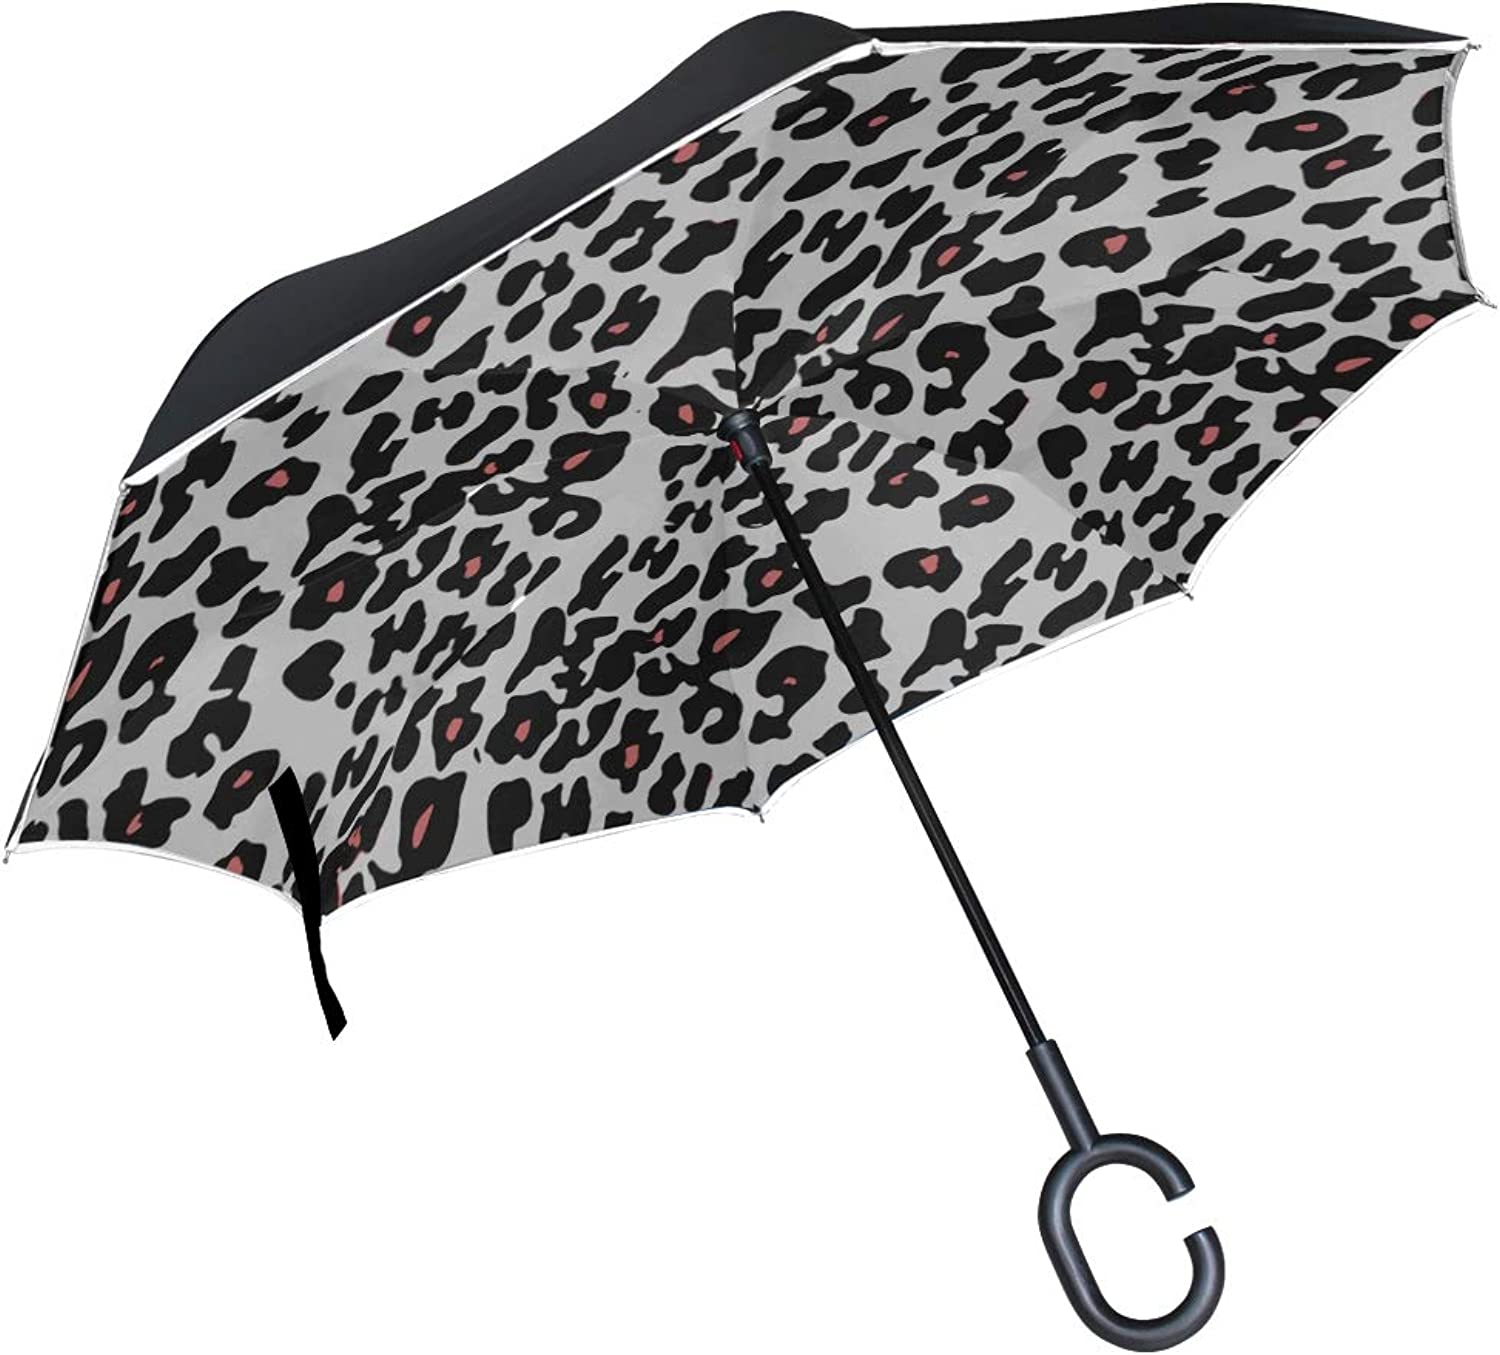 Double Layer Ingreened Animal Skin Pattern Vector Umbrellas Reverse Folding Umbrella Windproof Uv Predection Big Straight Umbrella for Car Rain Outdoor with CShaped Handle